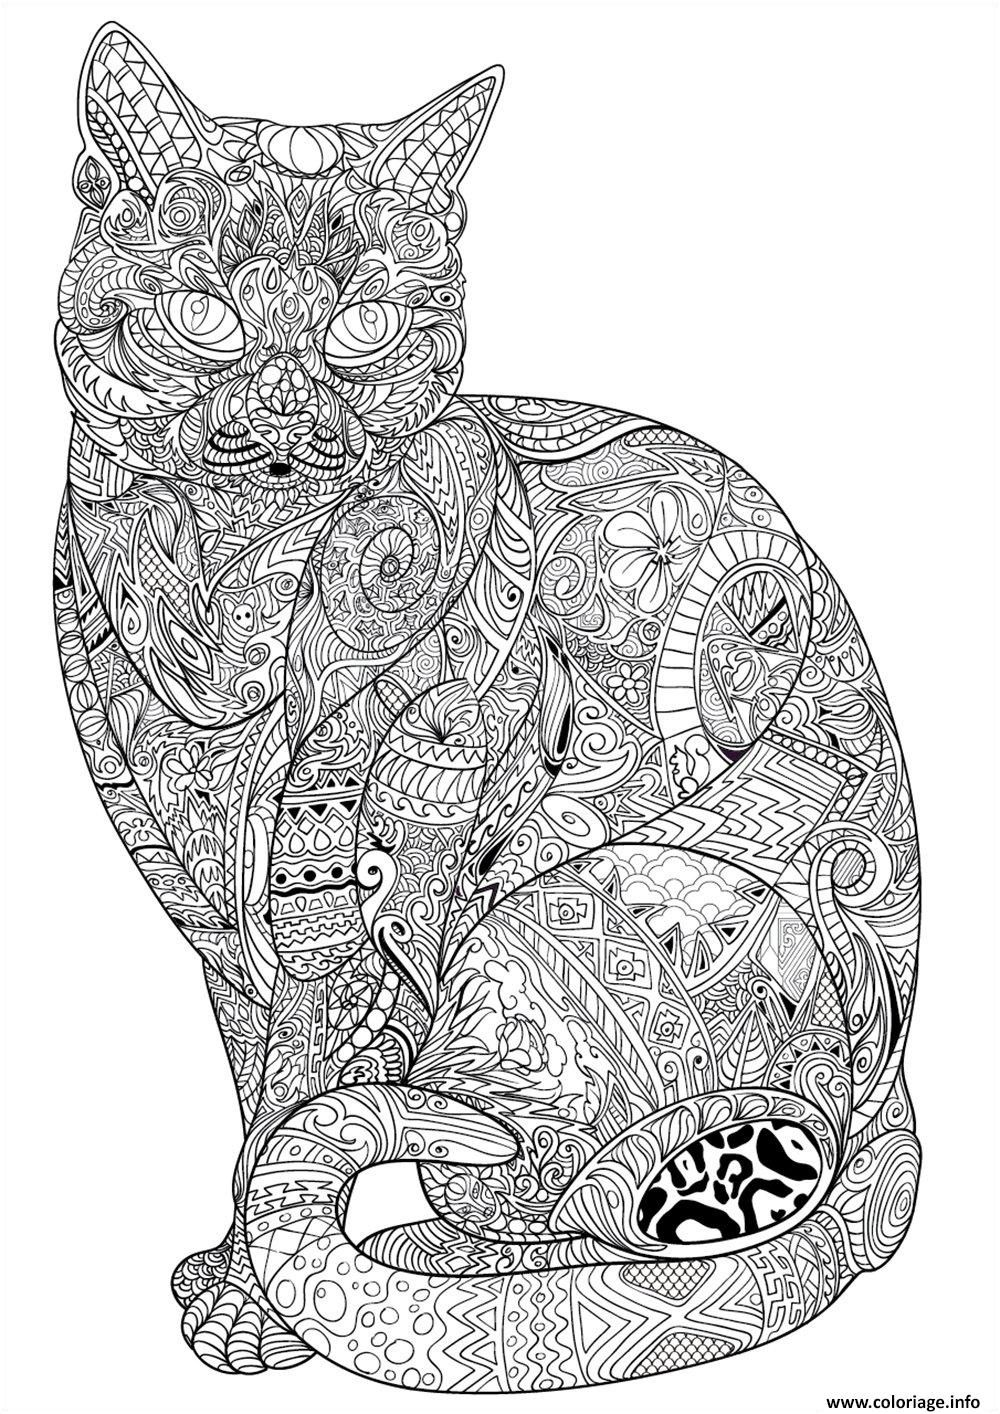 13 Mieux Coloriage Anti Stress Animaux Cerf Collection Coloriage